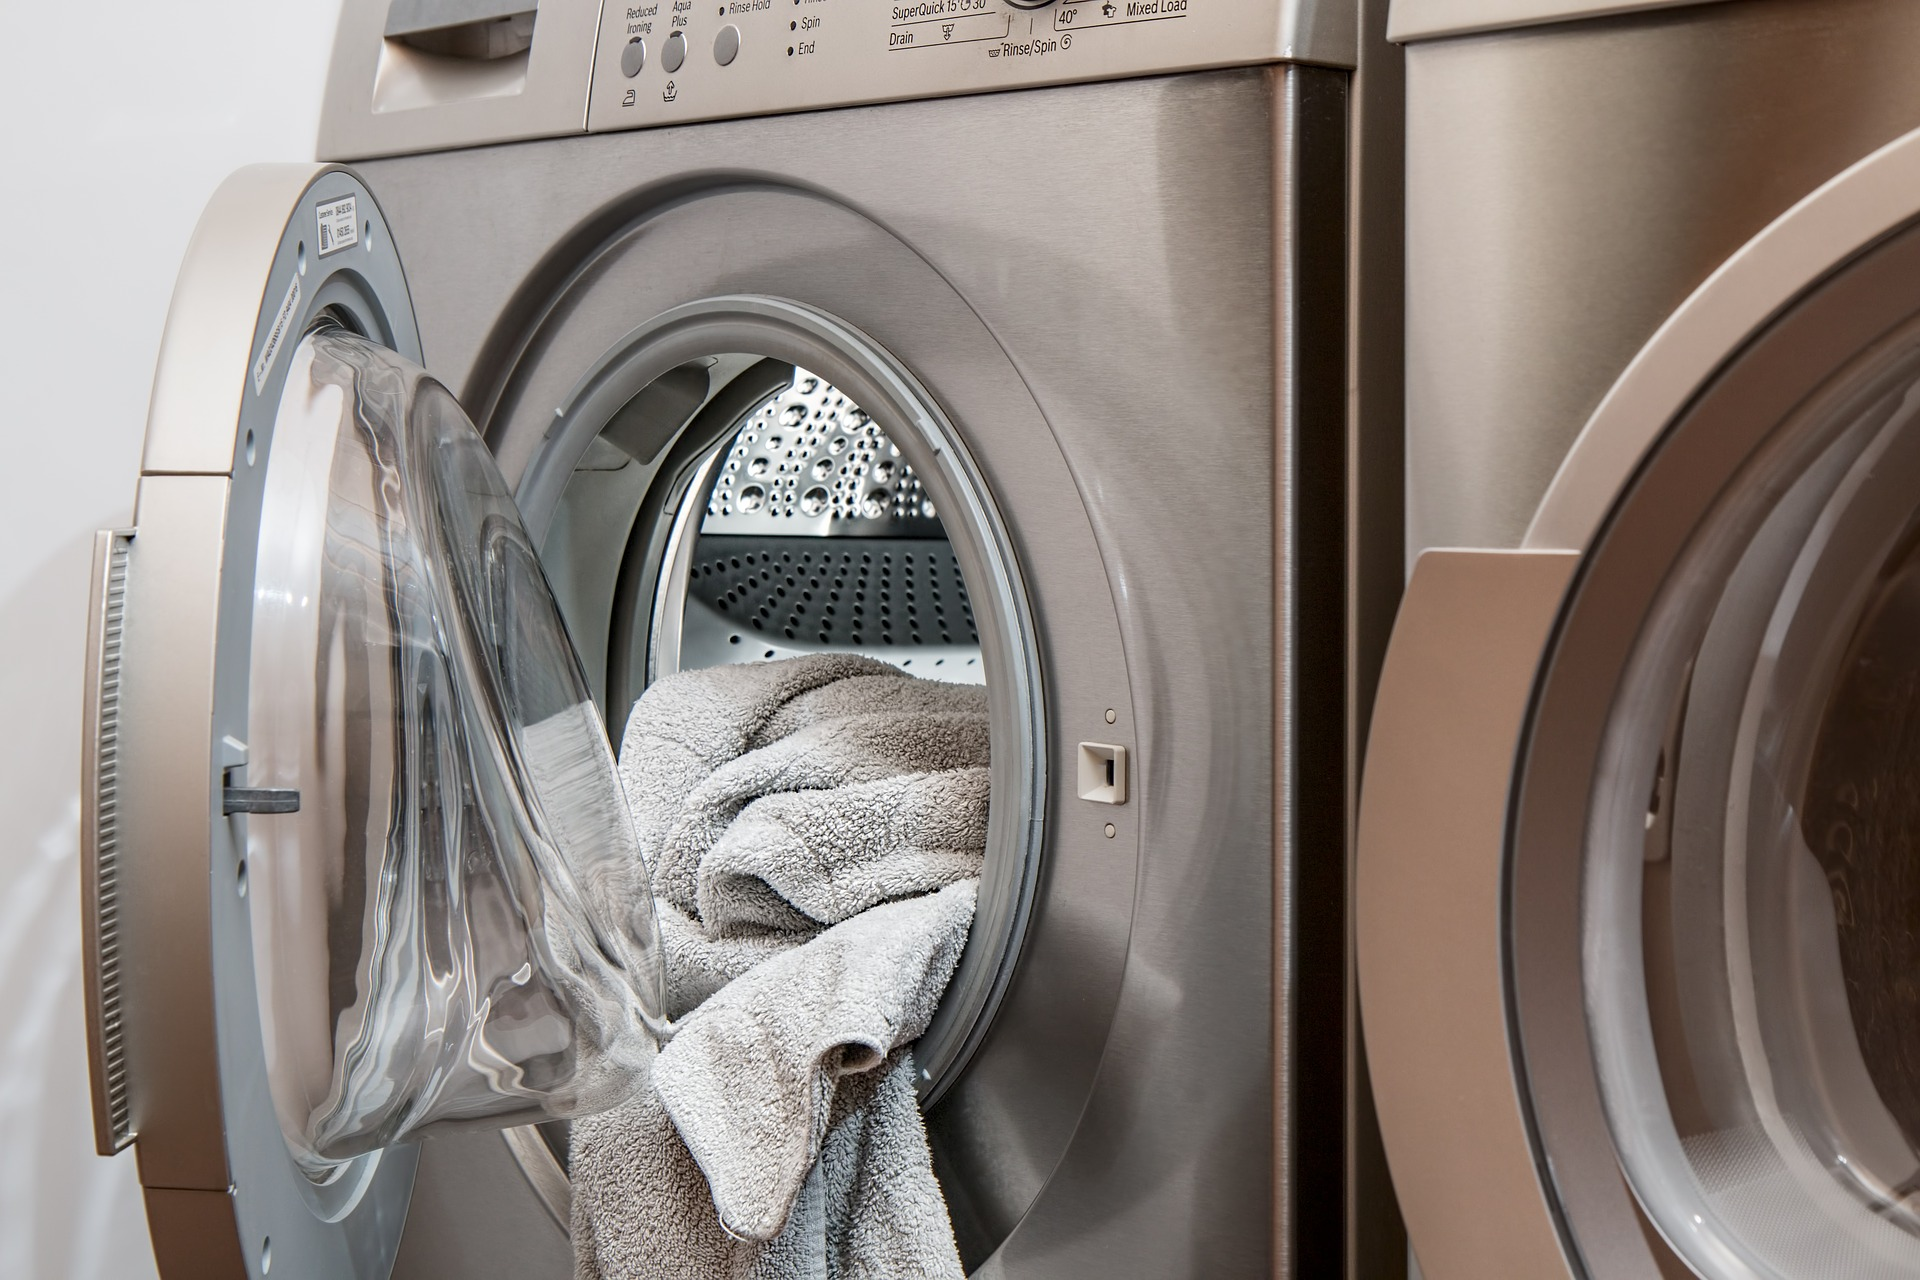 Dryer Not Spinning? 7 Possible Reasons Why